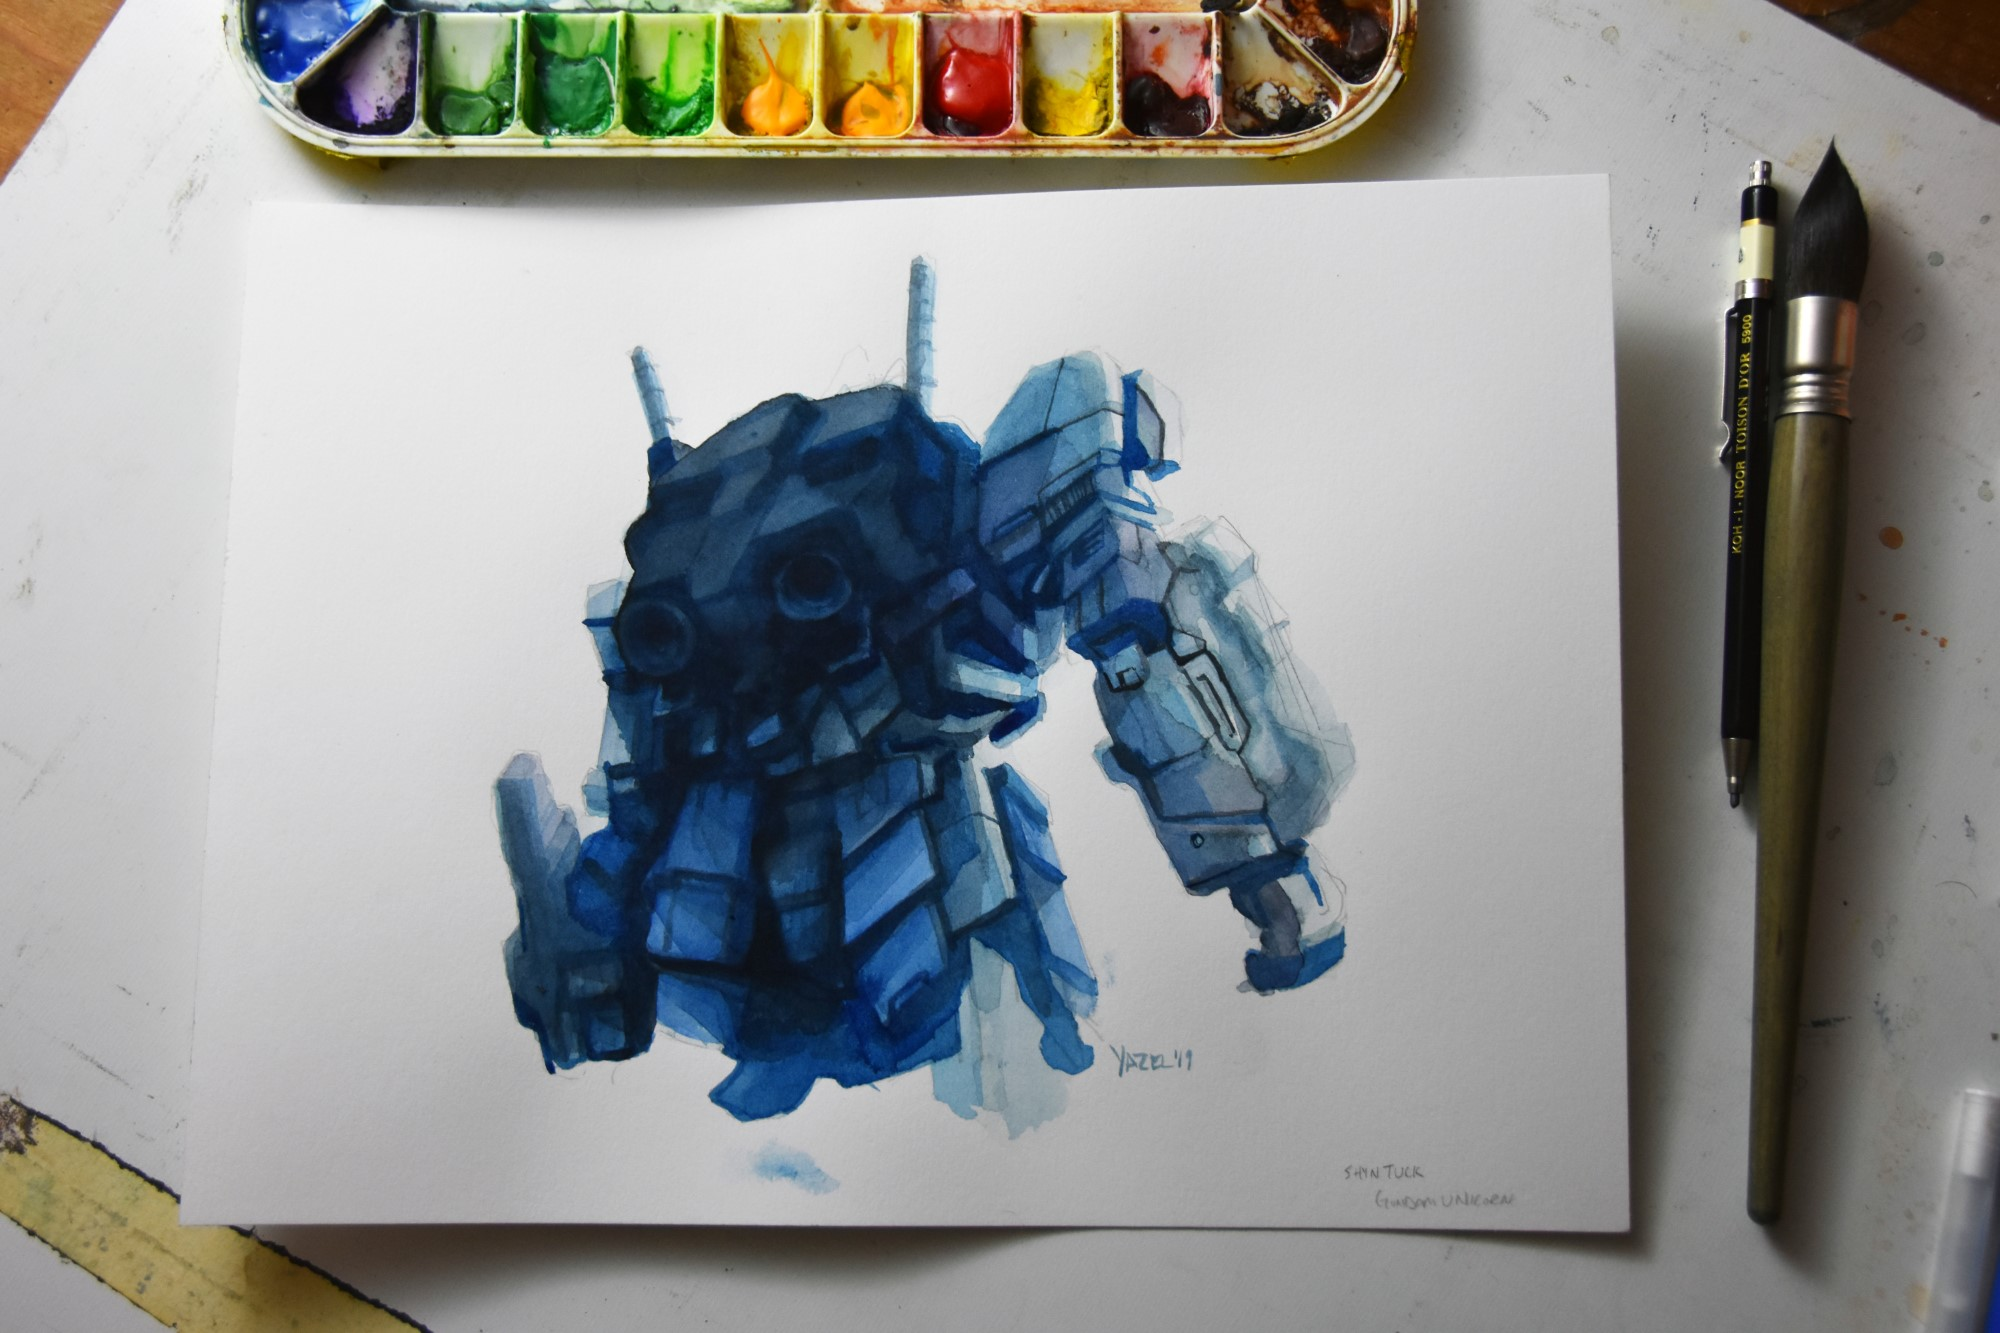 This one is based on a giant gundam statue in Japan. I painted this too dark too fast so it's a bit of a dud, but I learned a lot how I can work with layered values in watercolor.